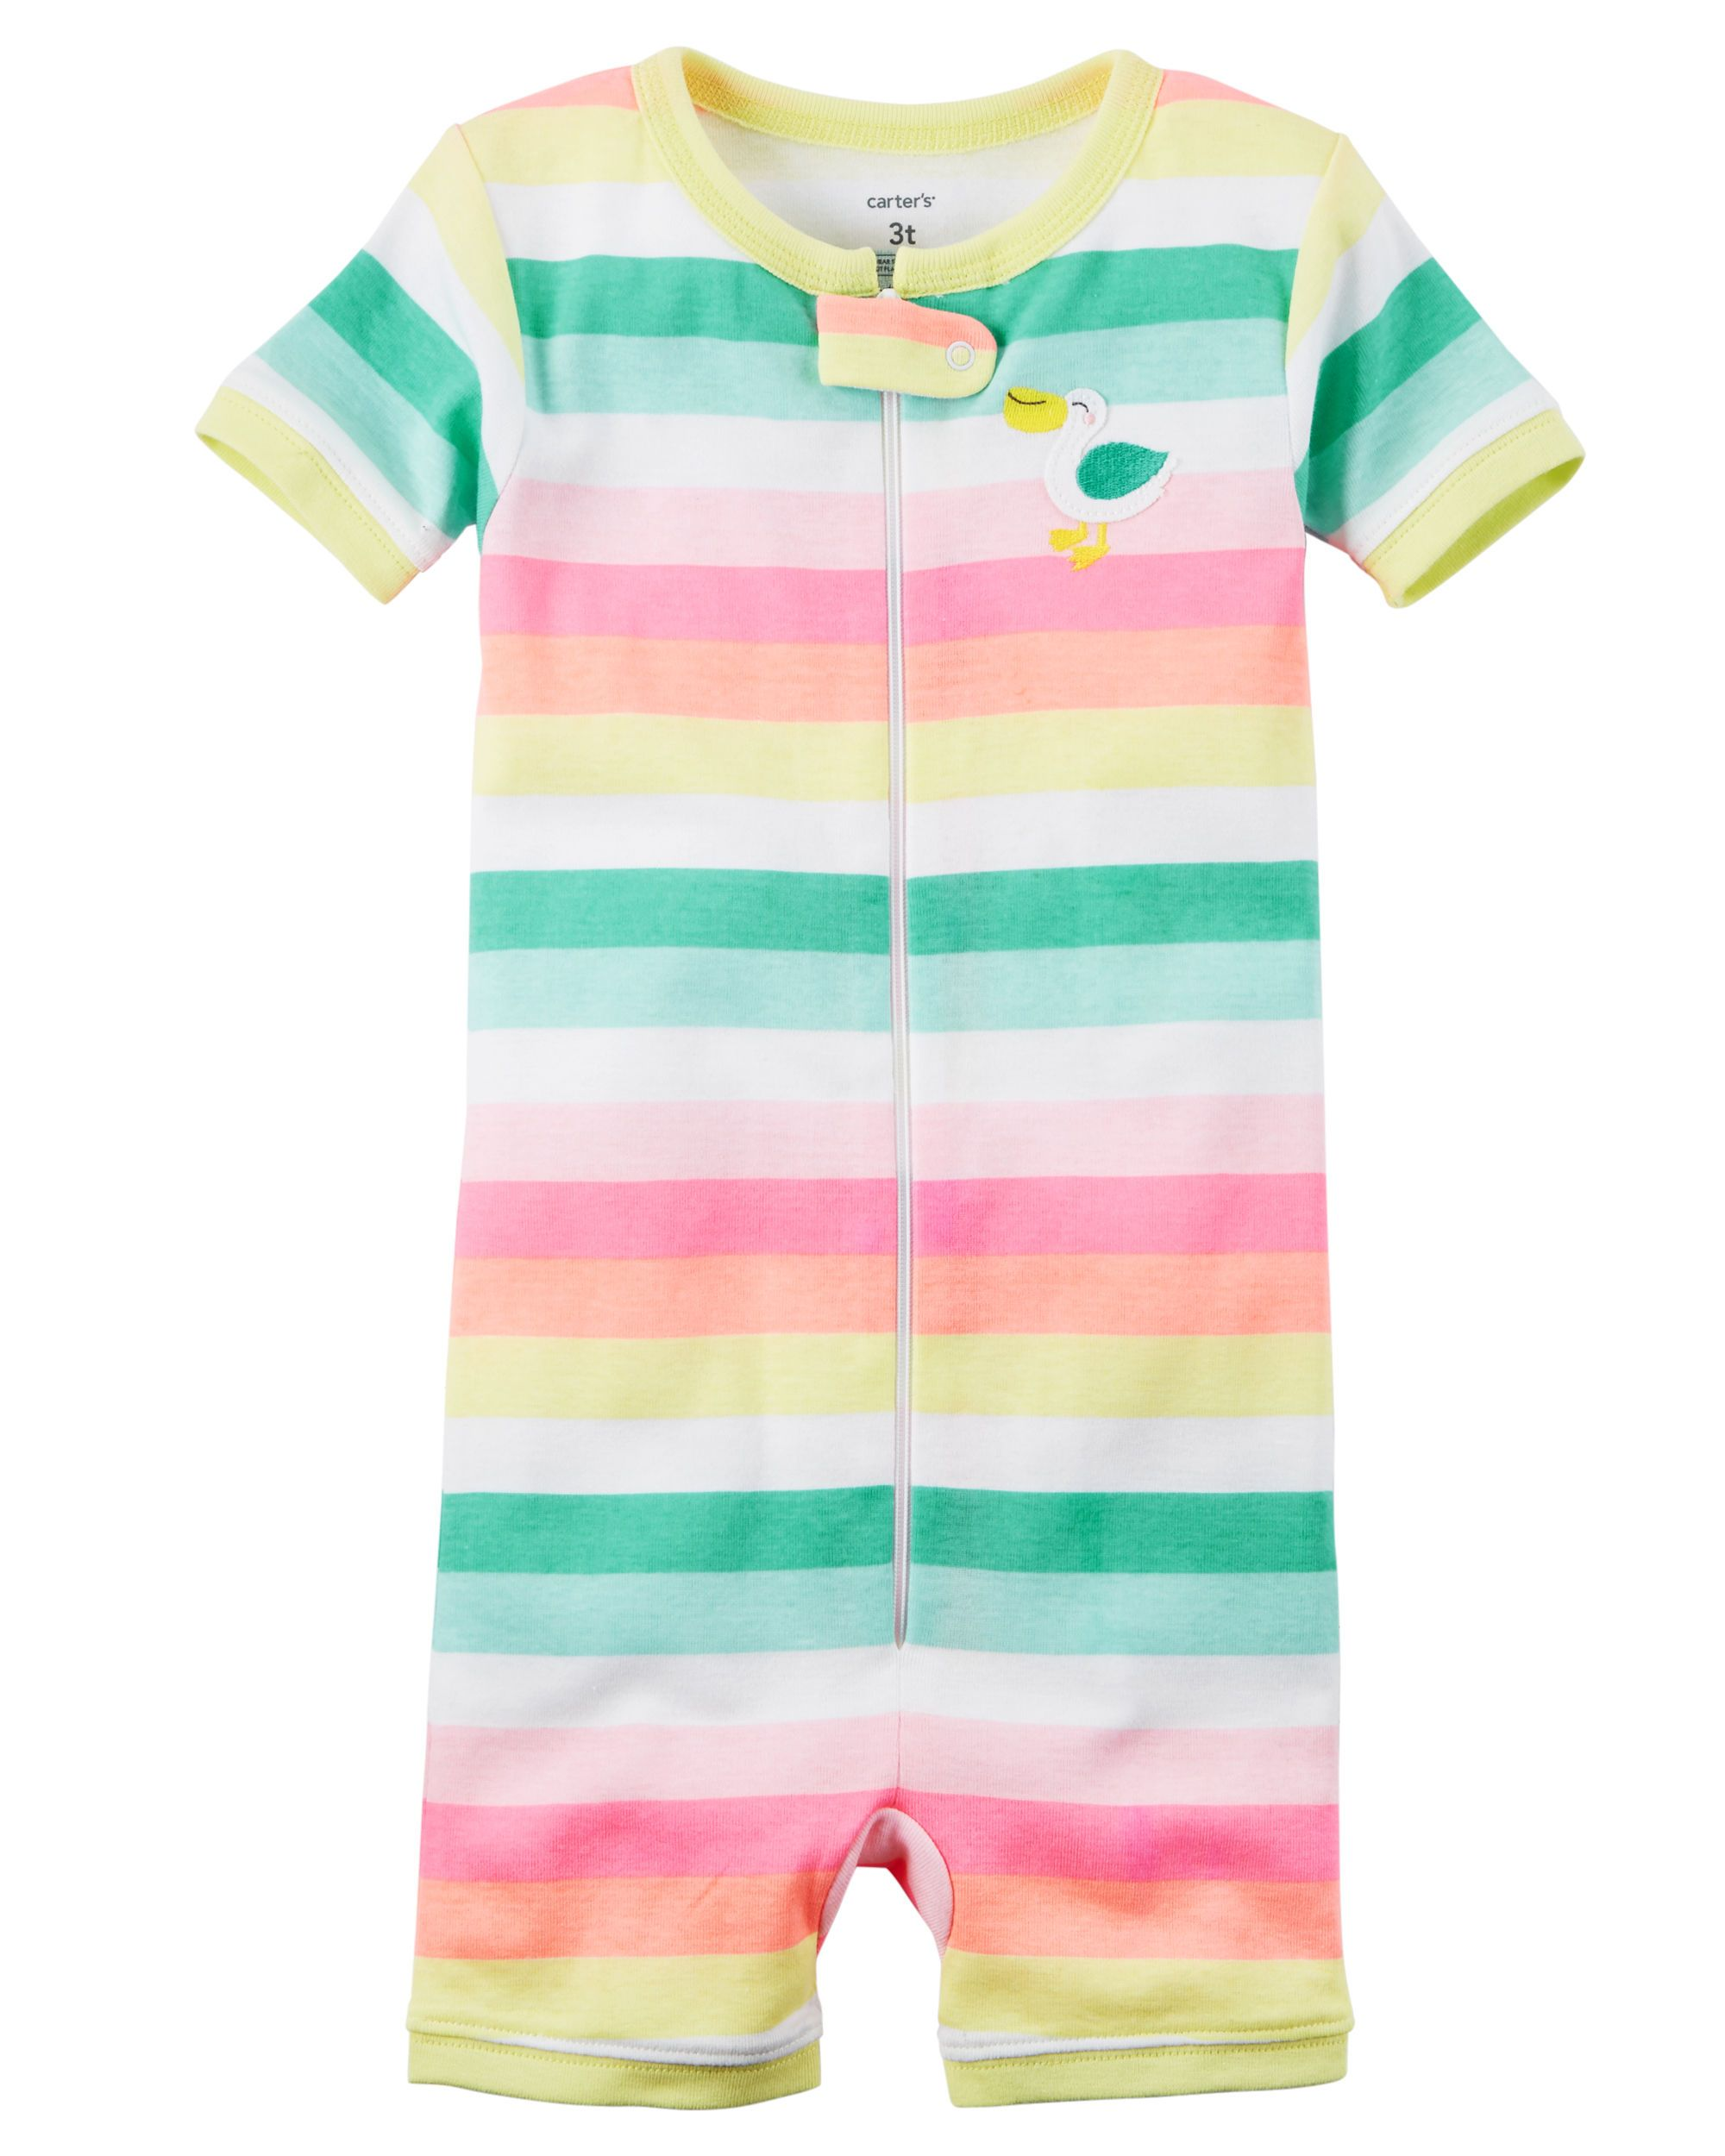 f8bd2c416750 Toddler Girl 1-Piece Snug Fit Cotton Romper PJs